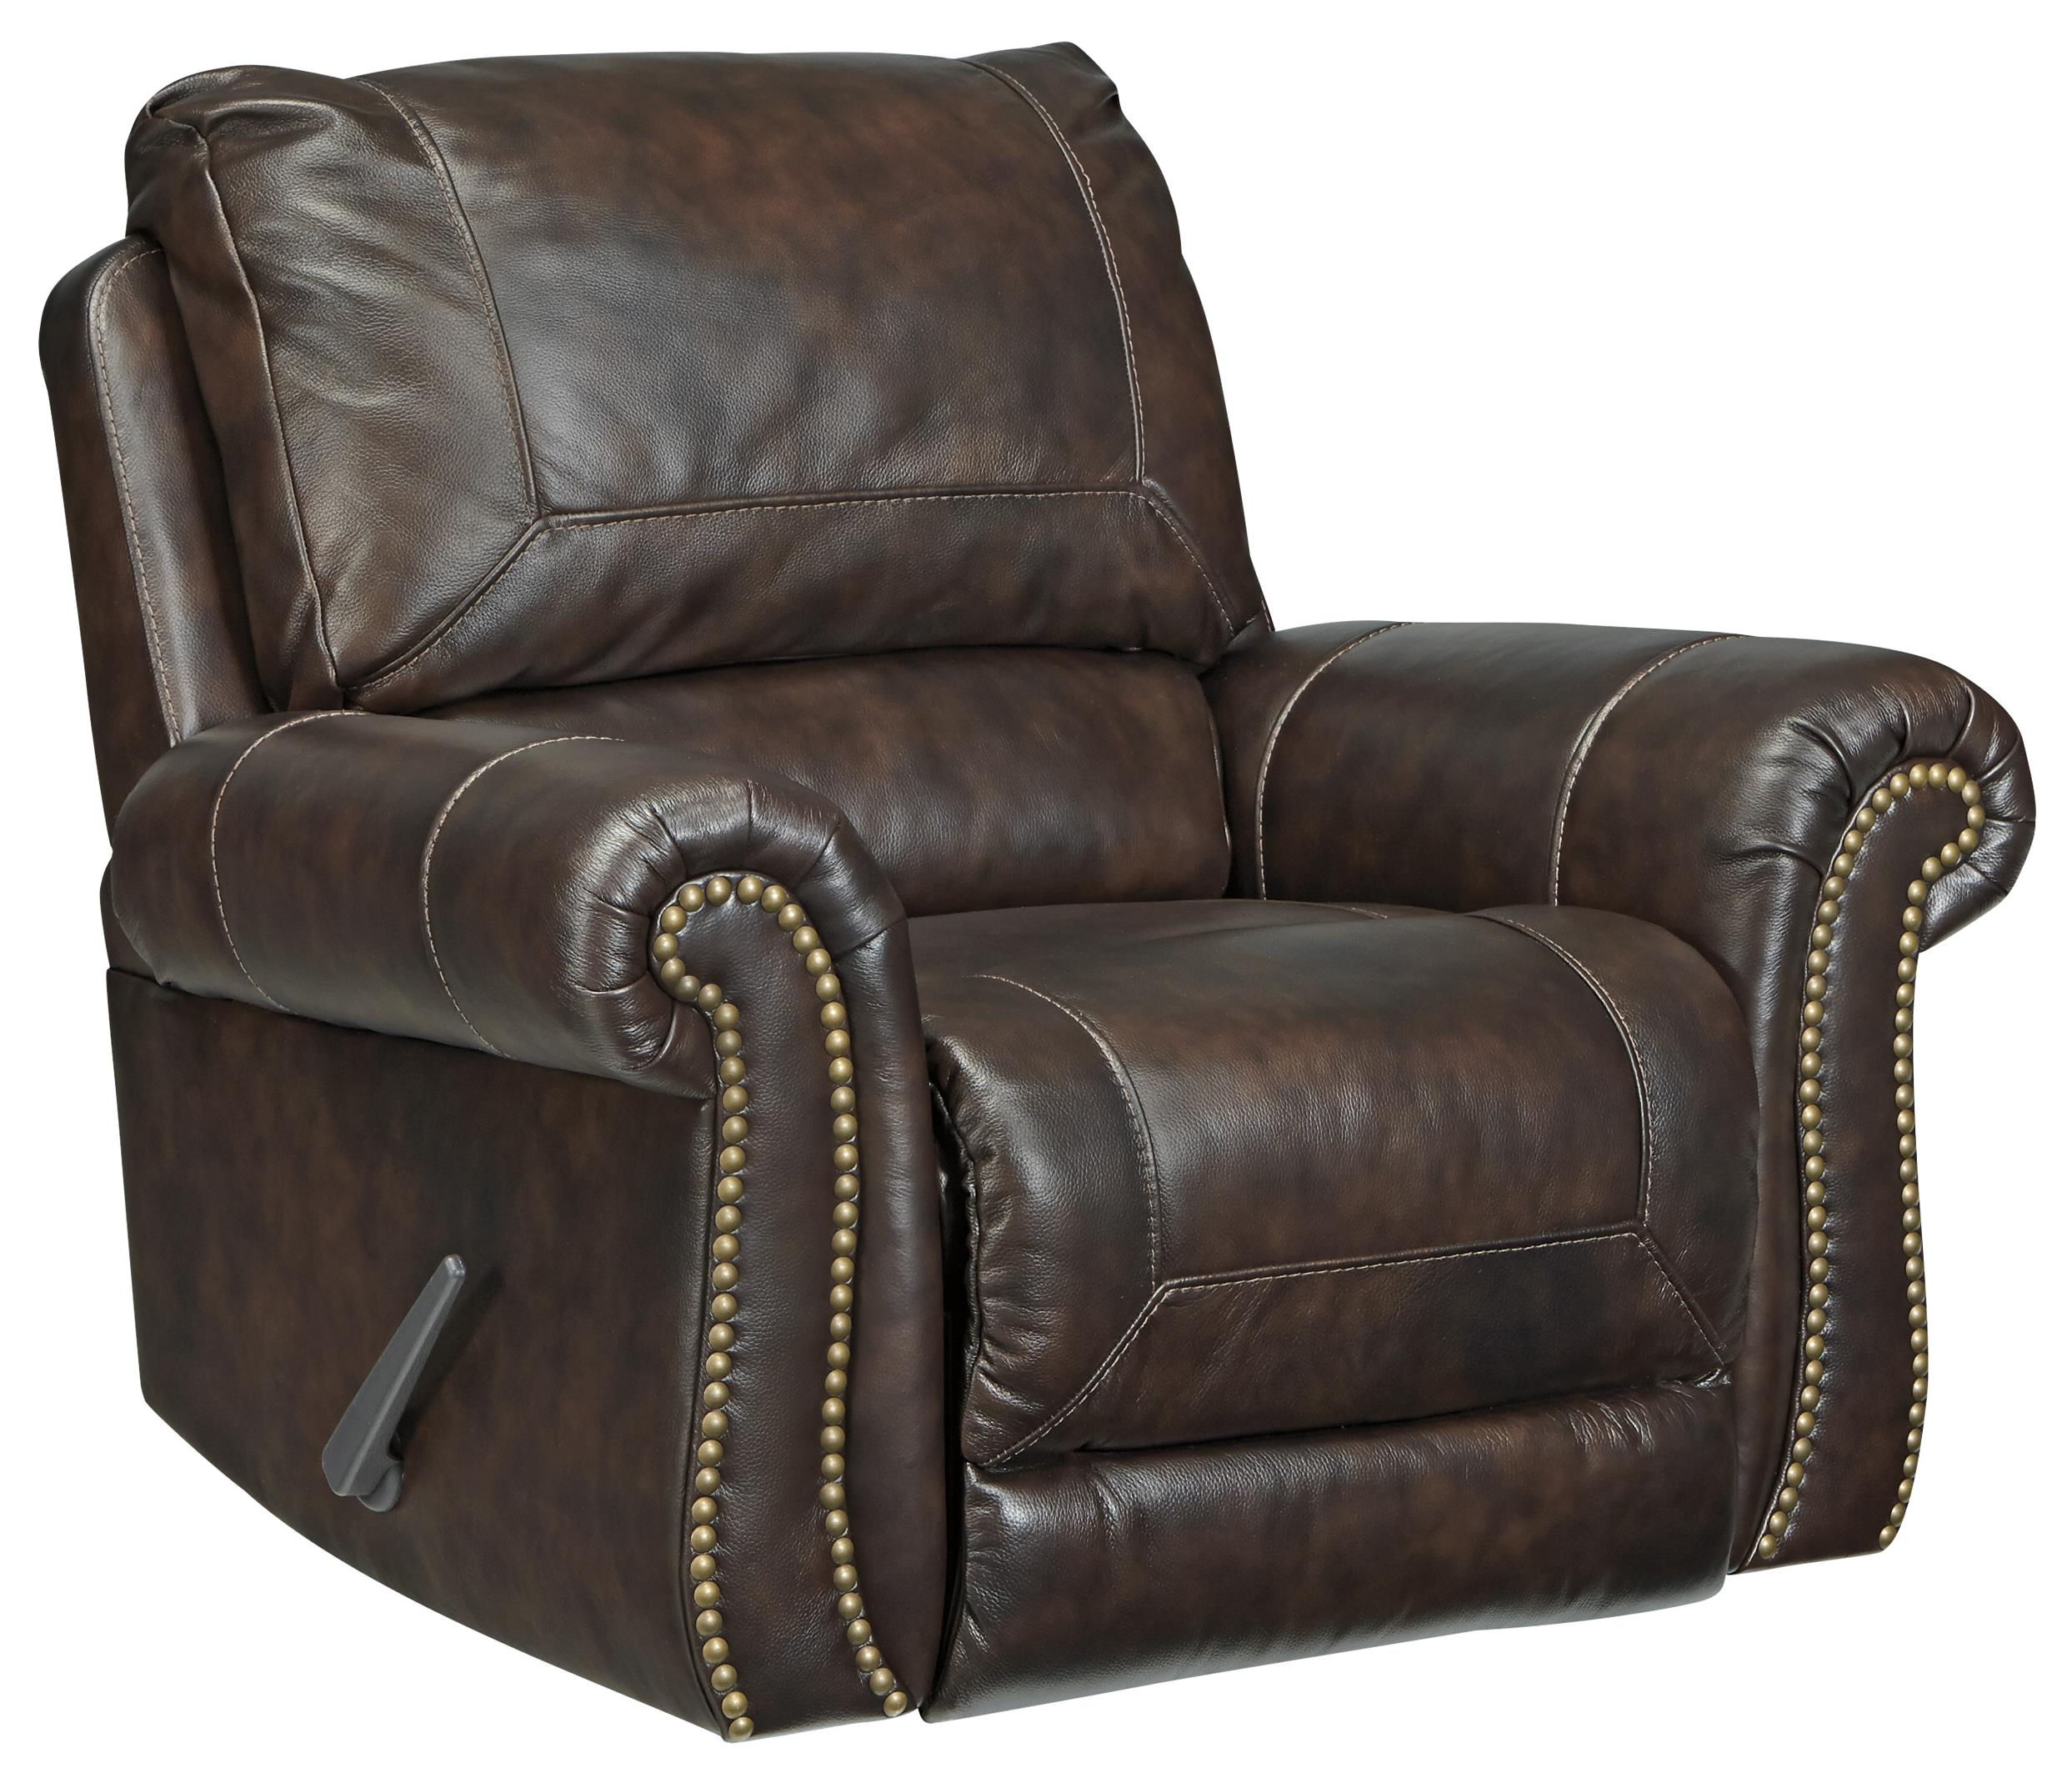 Traditional Leather Match Rocker Recliner With Rolled Arms